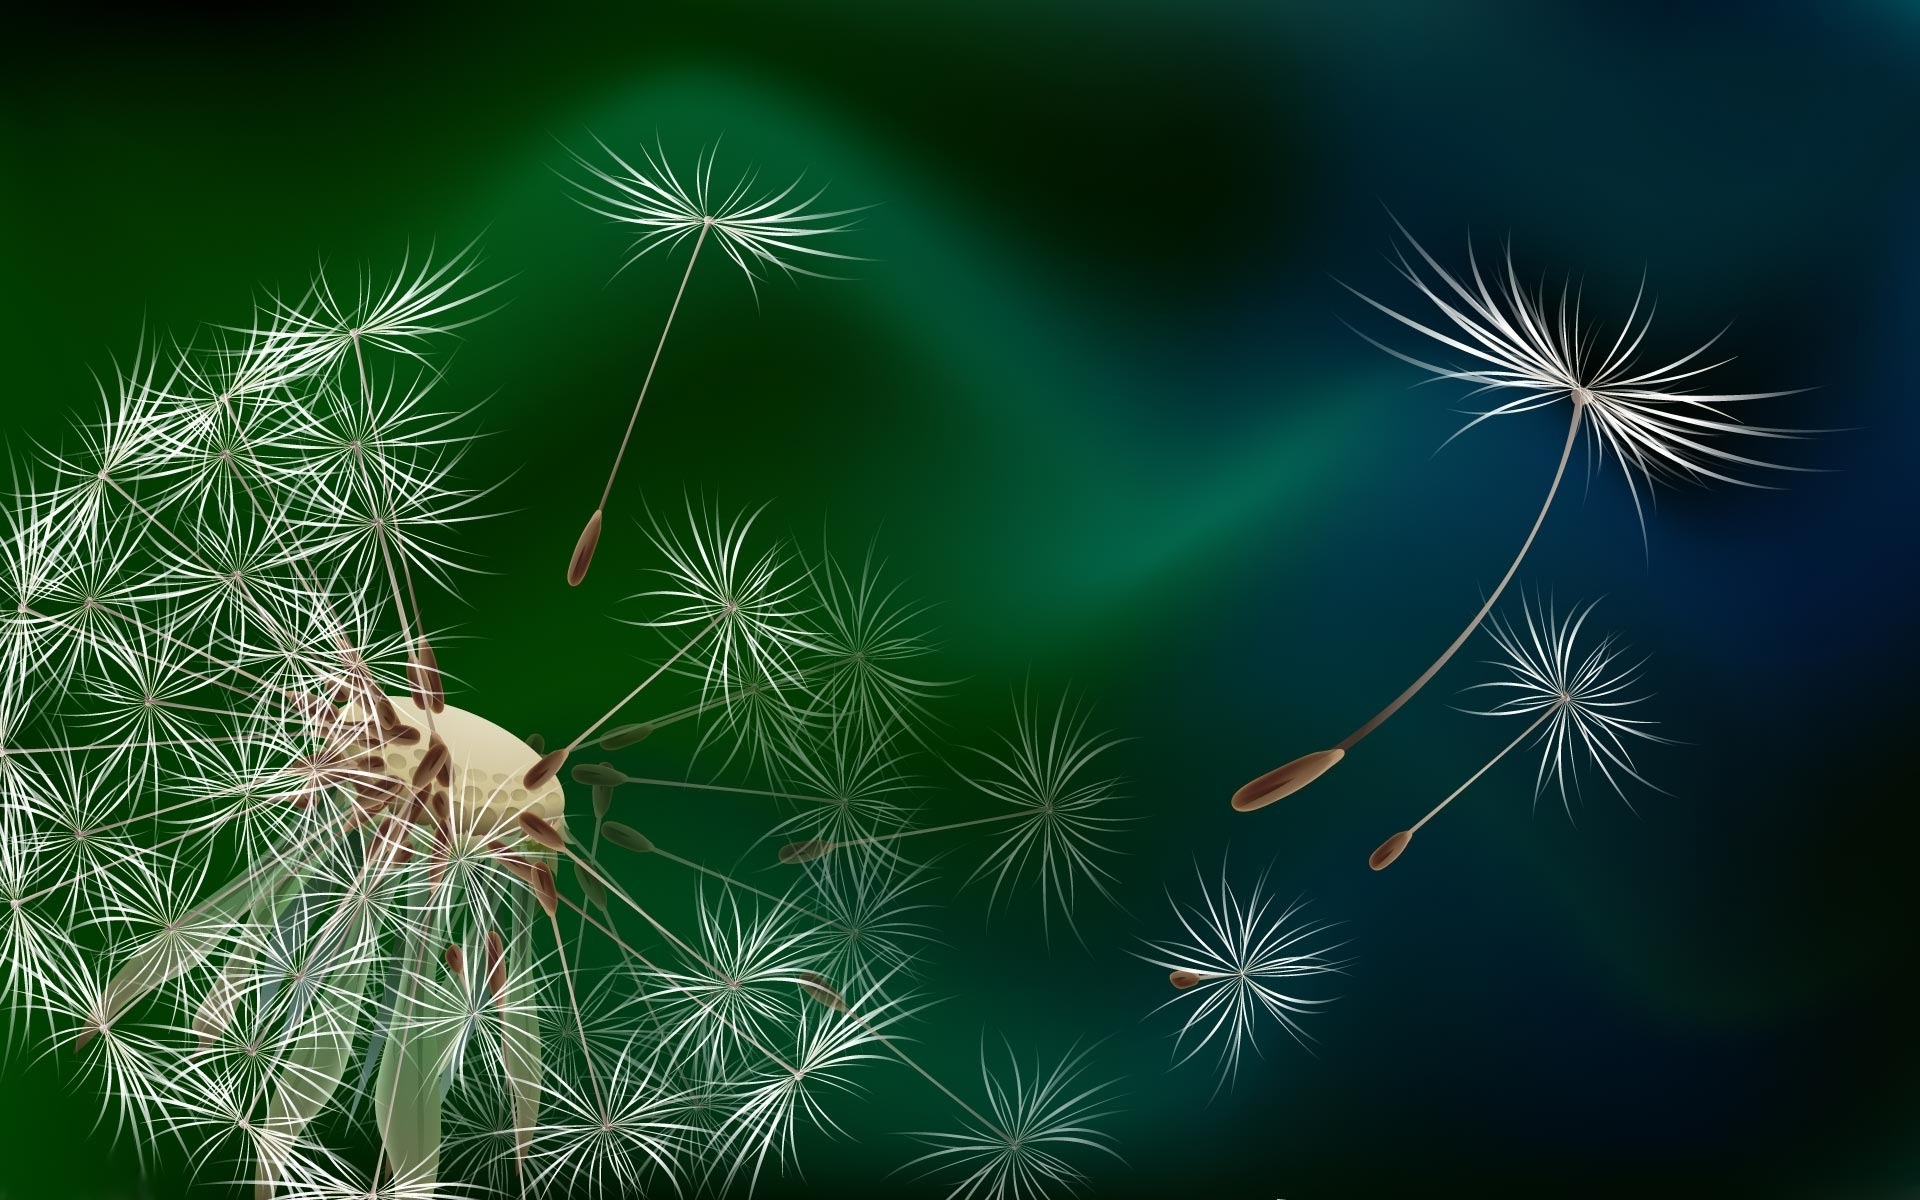 Www 3d Flower Wallpaper Com Flower Wallpaper Dandelion 13 High Resolution Wallpaper